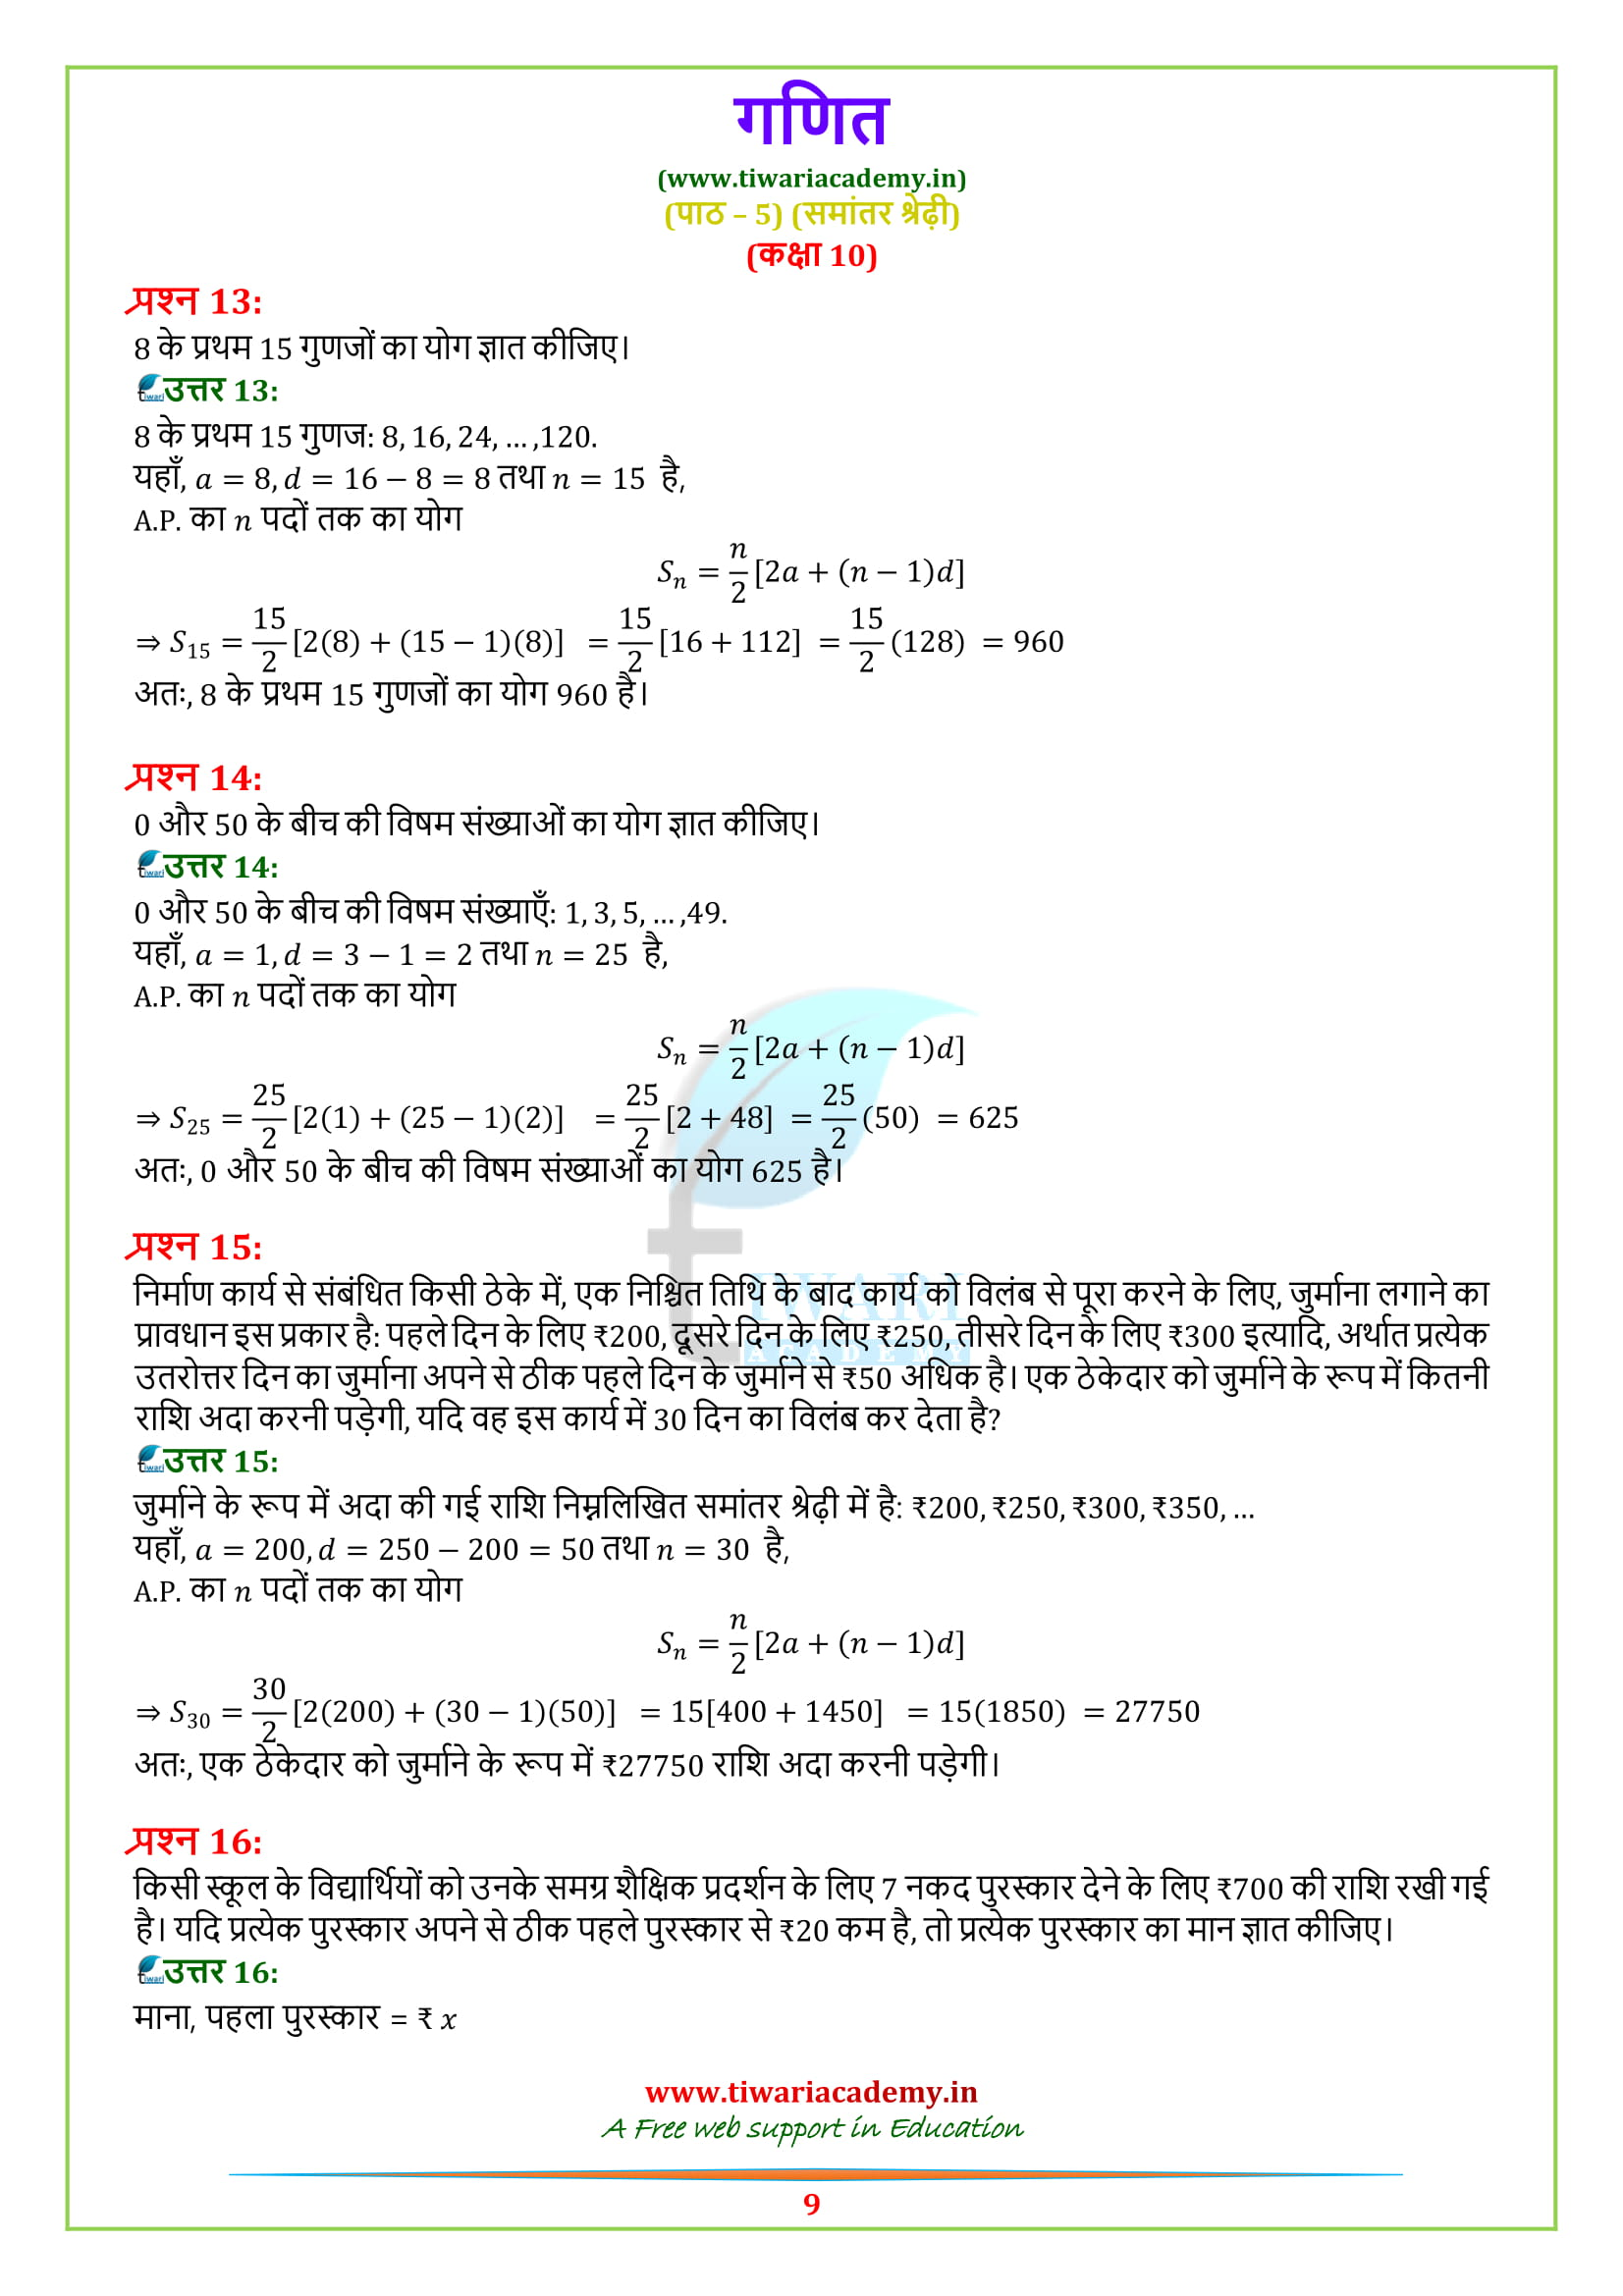 10 Maths Exercise 5.3 sols in Hindi